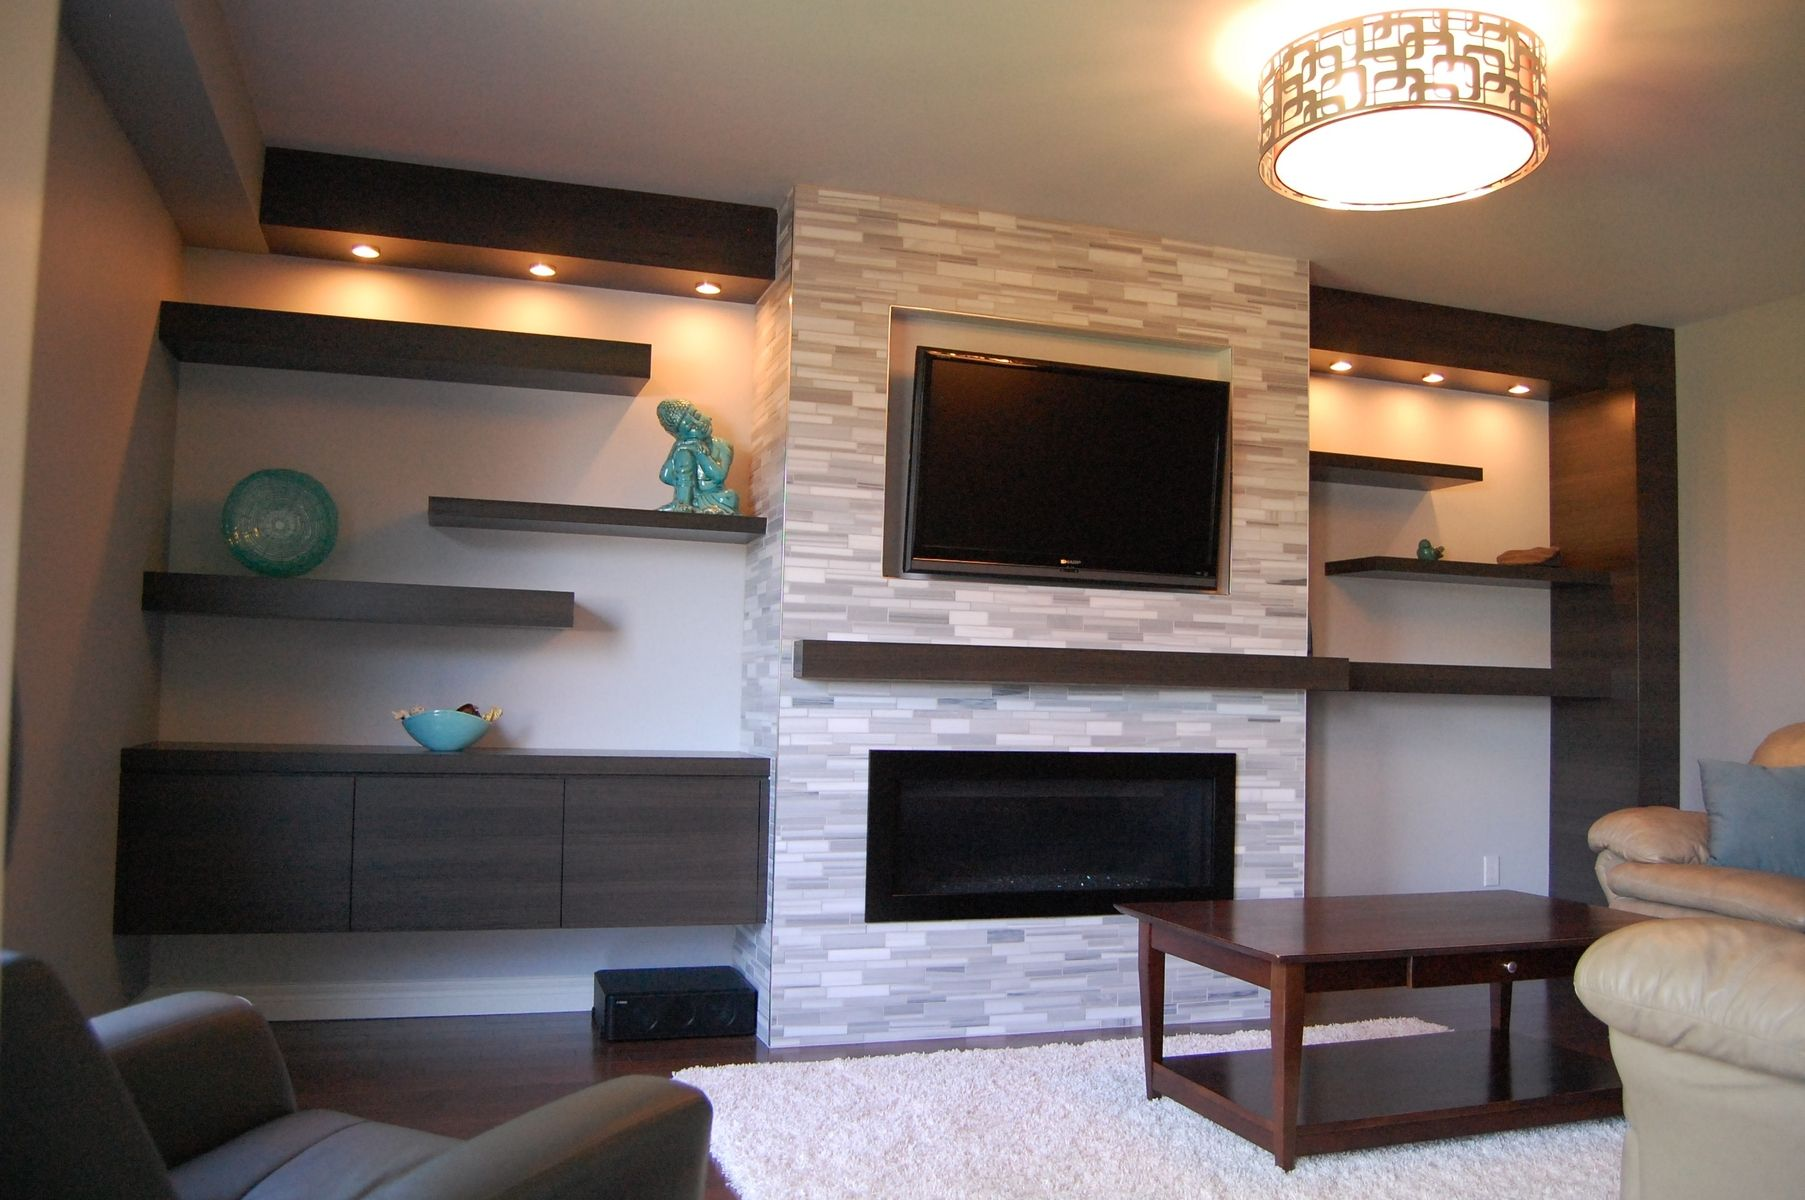 Modern Entertainment Center with Fireplace Elegant Custom Modern Wall Unit Made Pletely From A Printed